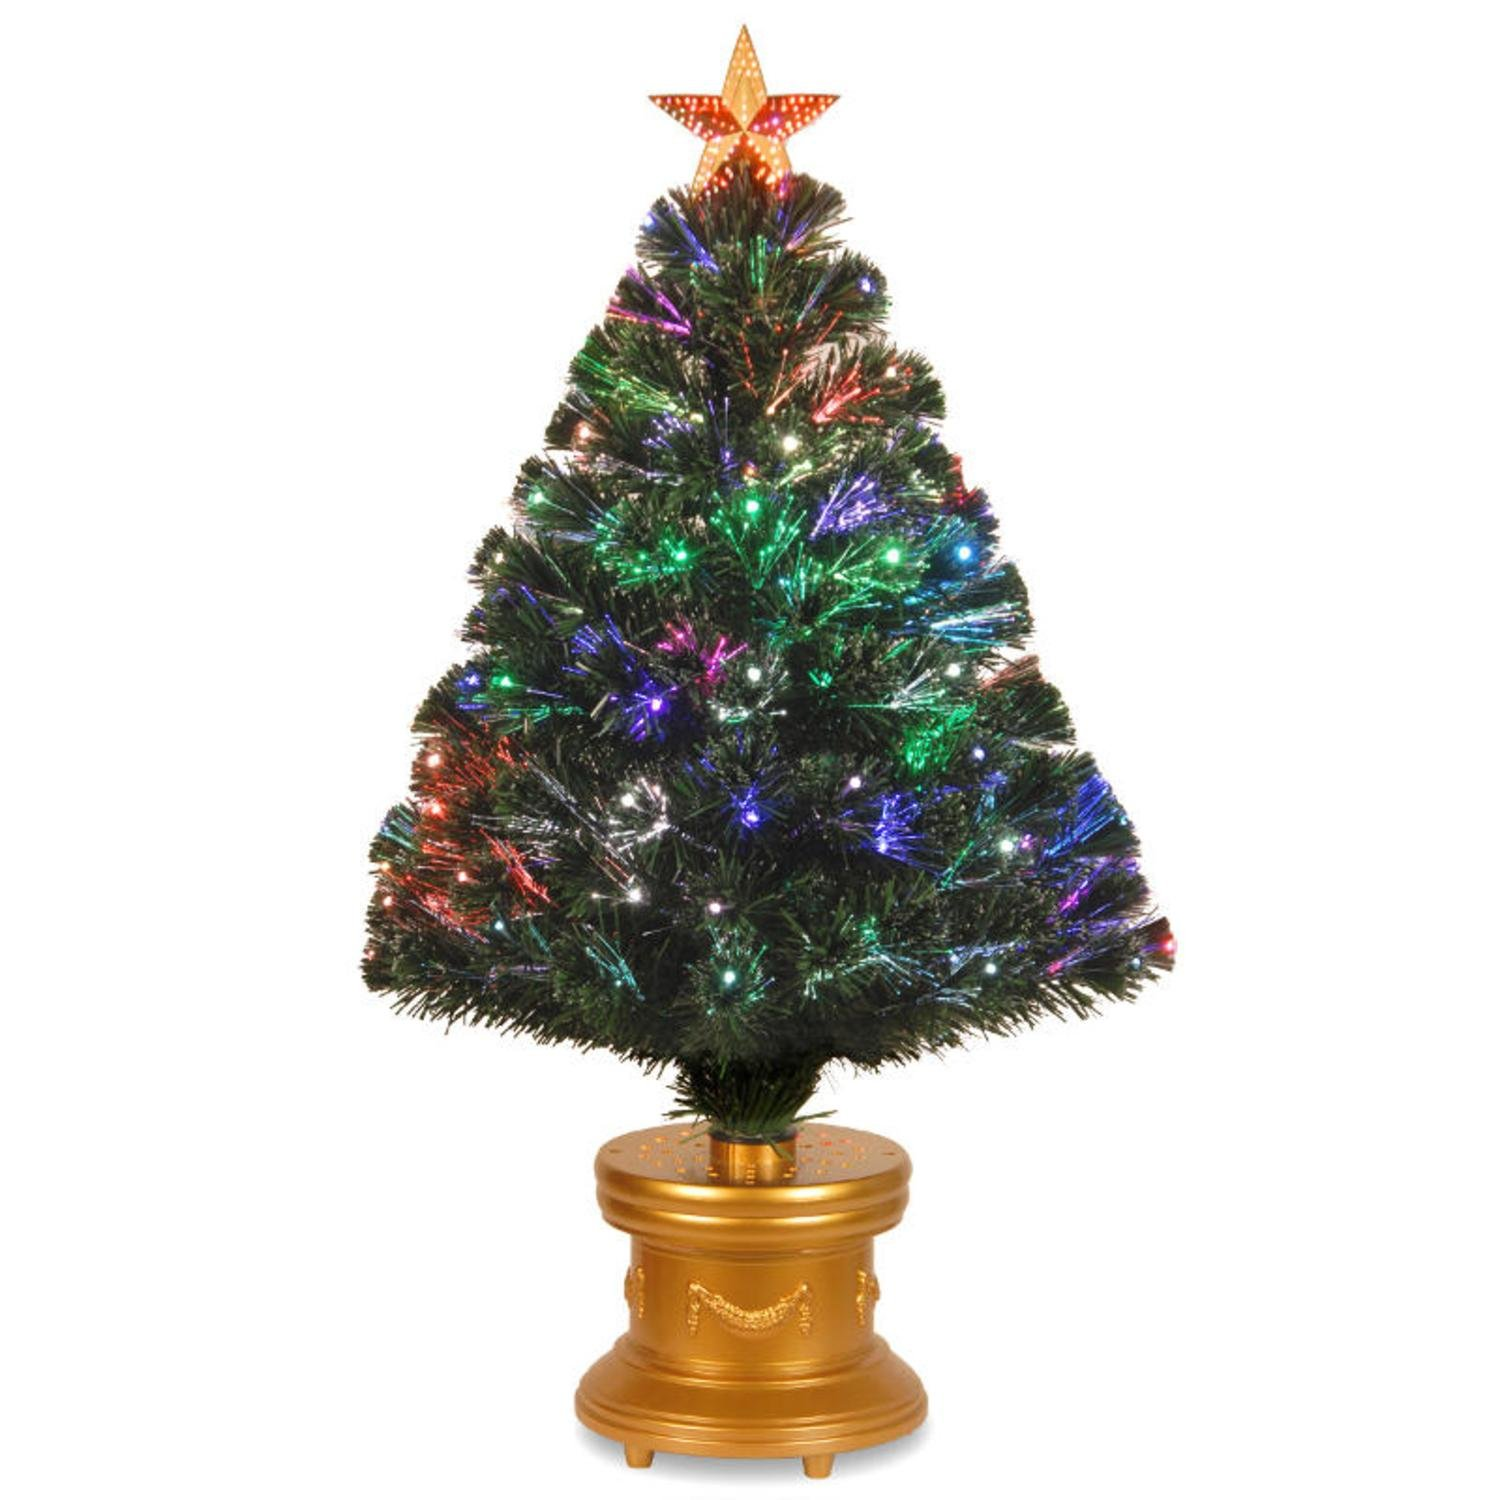 Tabletop Fiber Optic Christmas Trees